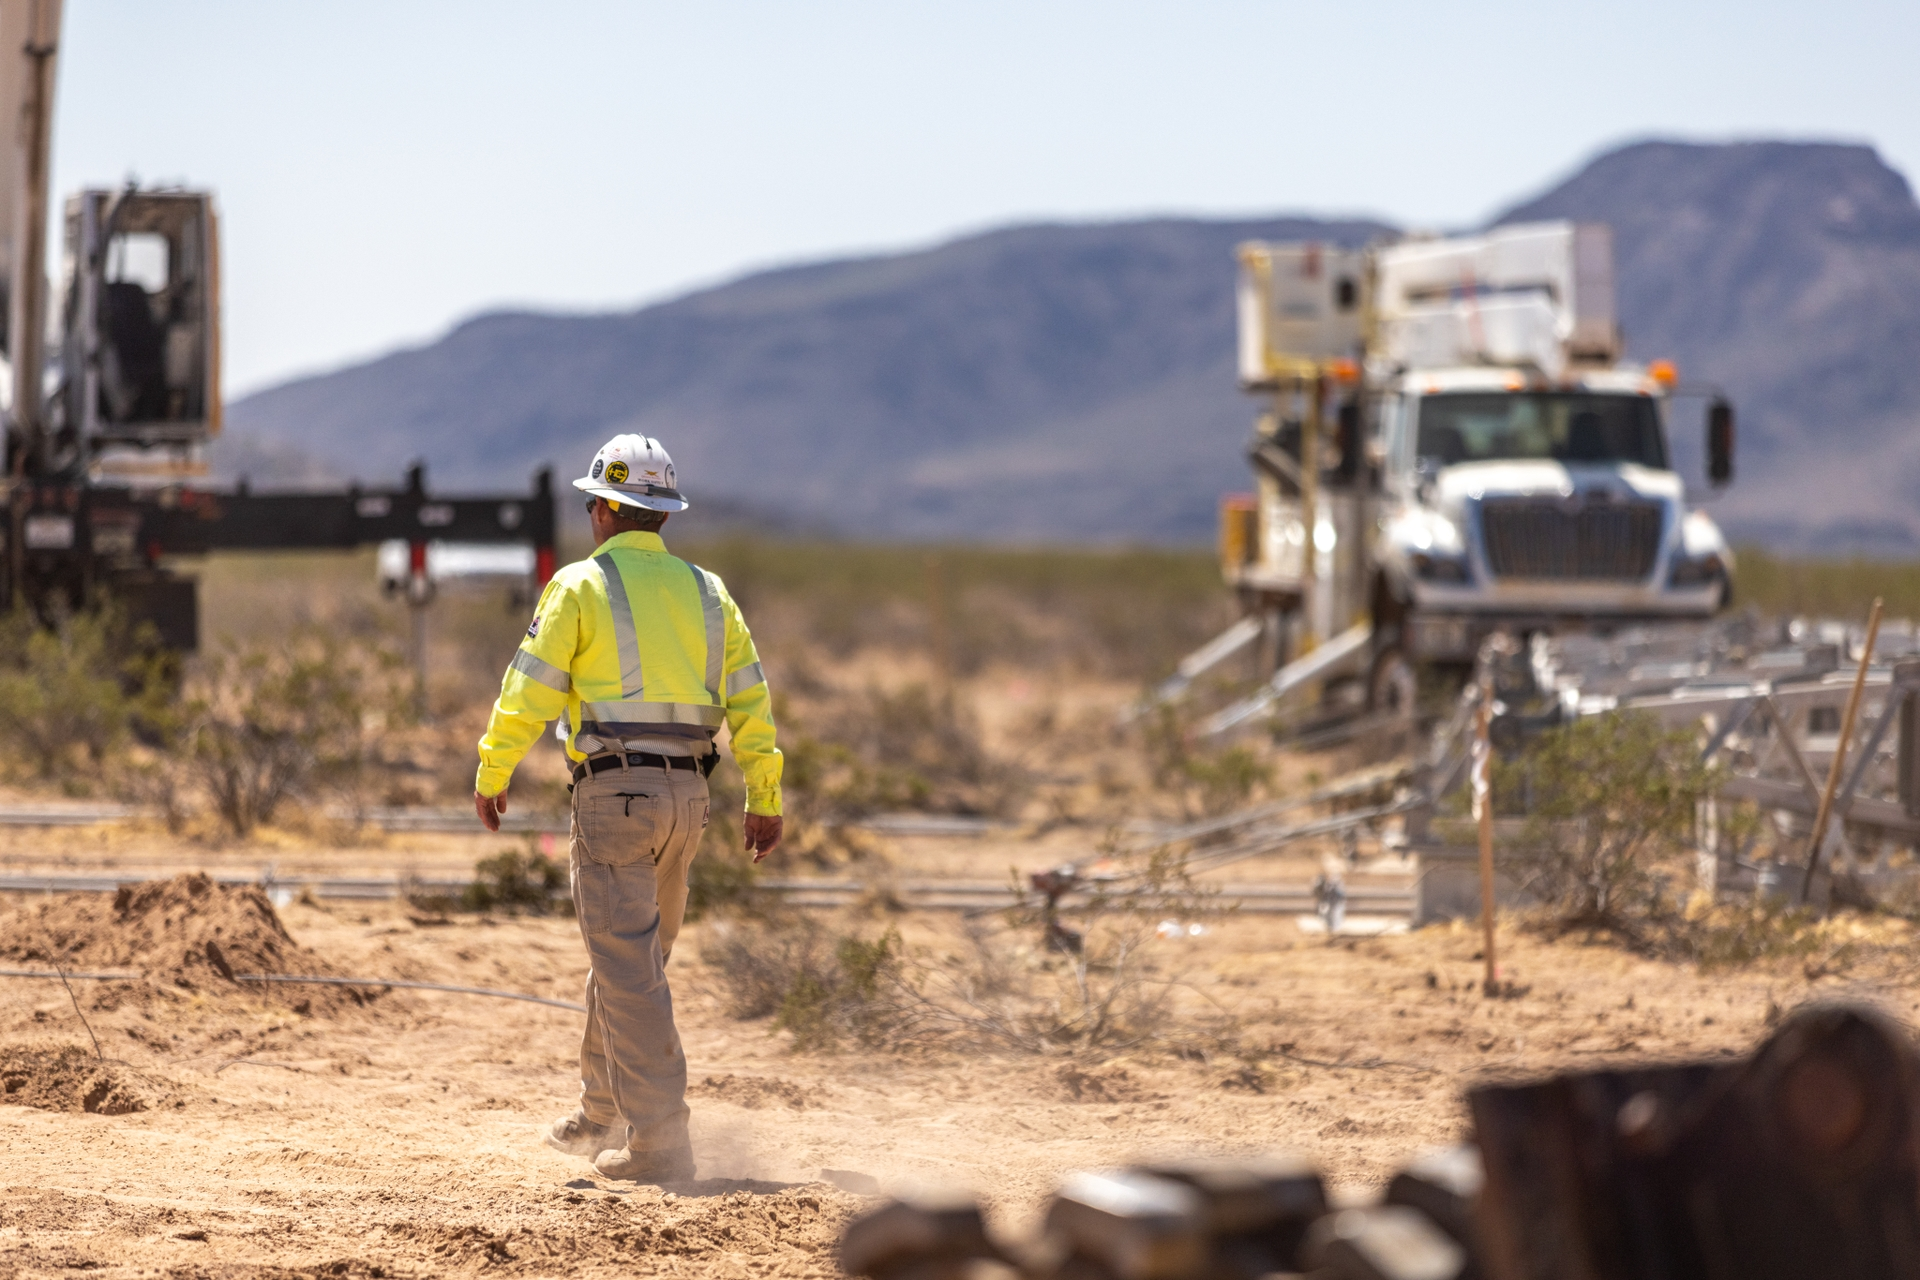 An SCE crew member approaching the temporarily disabled Colorado River/Palo Verde transmission line.